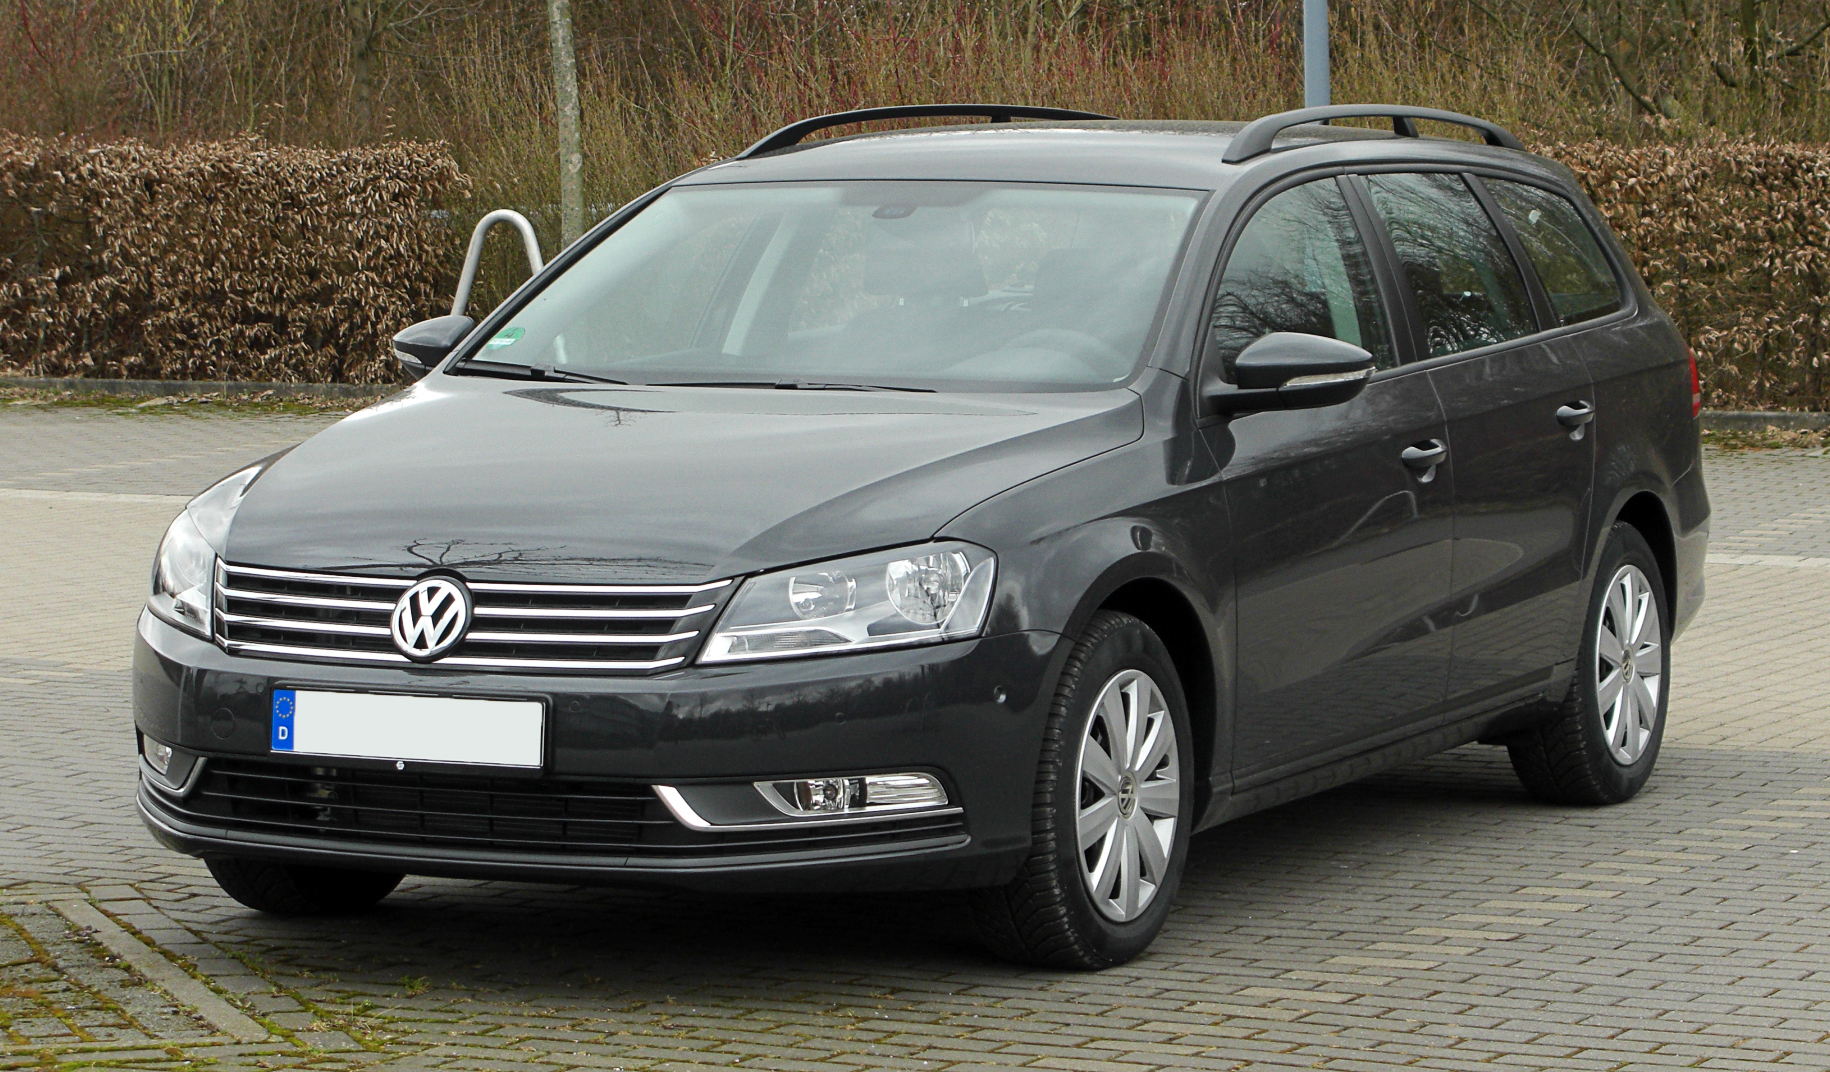 2015 volkswagen passat variant b7 pictures information and specs auto. Black Bedroom Furniture Sets. Home Design Ideas